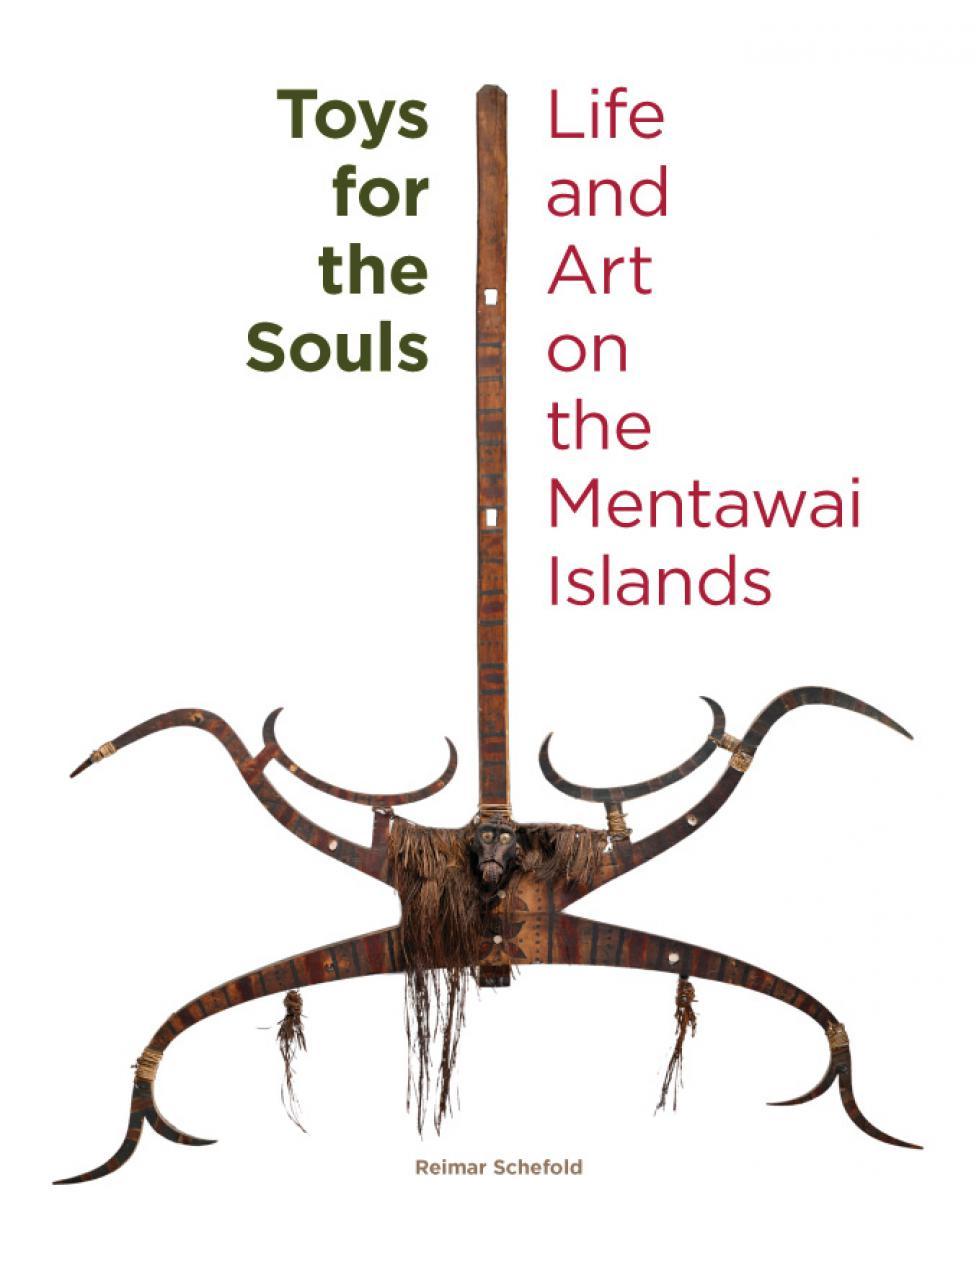 Toys for the Souls Life and Art on the Mentawai Islands Dr. Reimar Schefold Art of the Ancestors